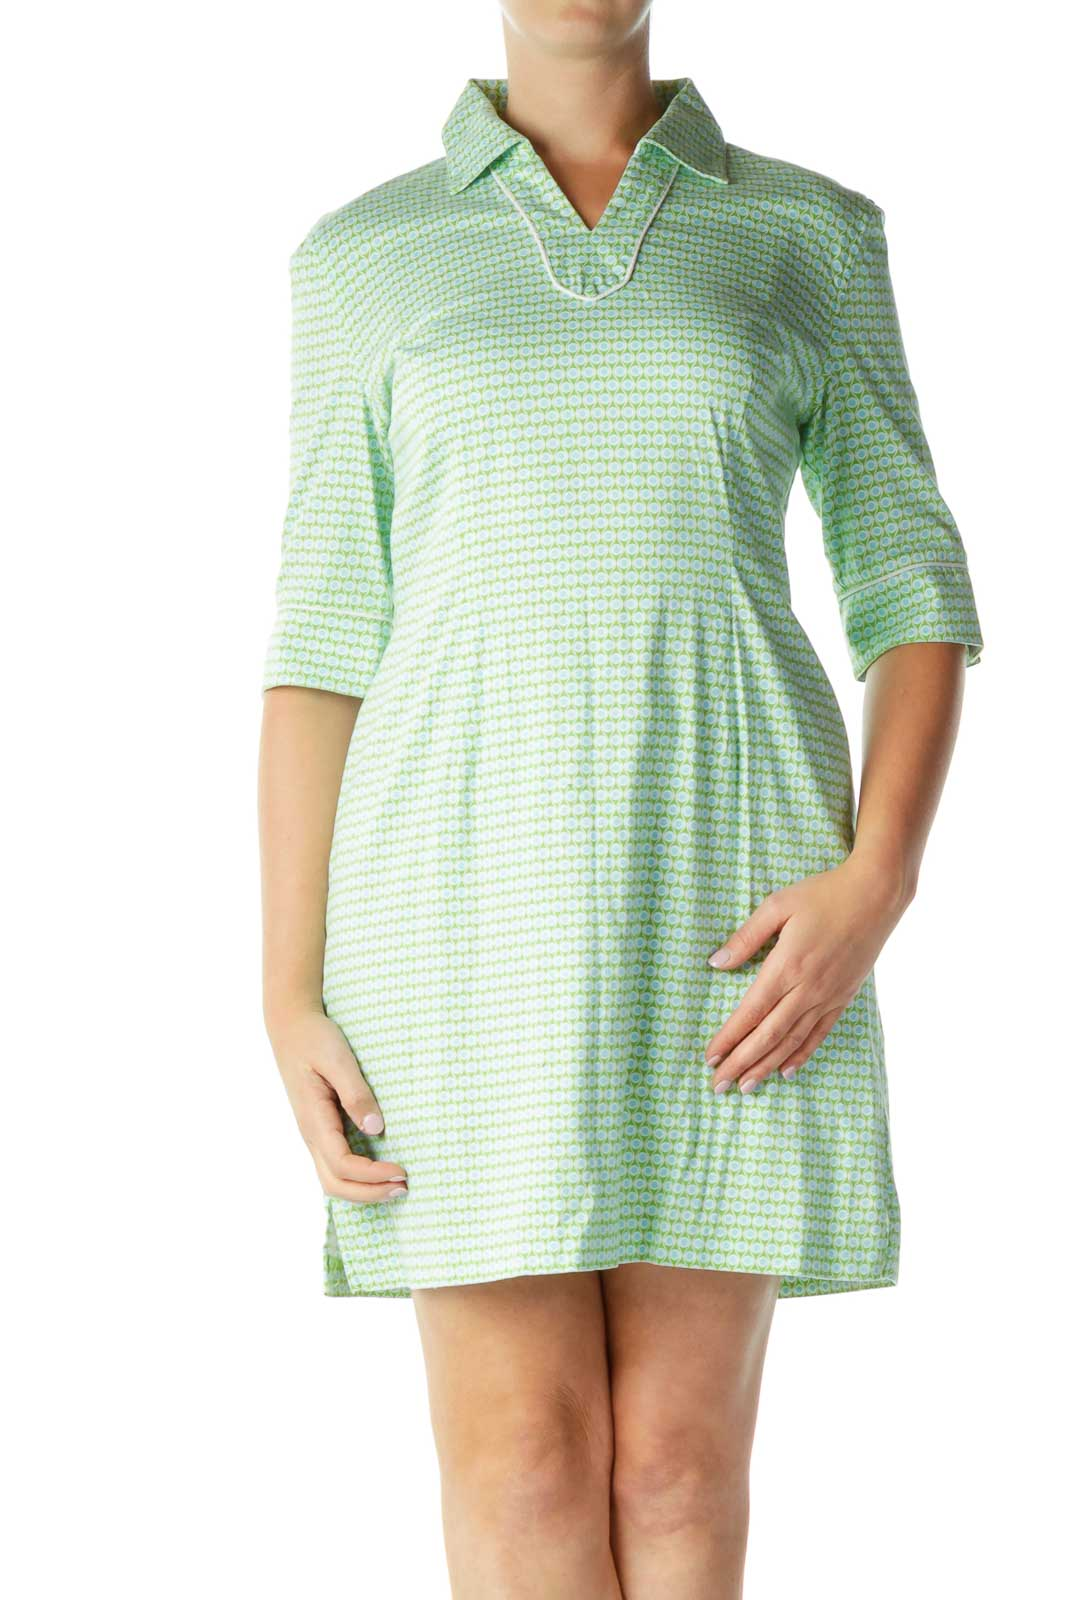 Green Multicolor Collared Dress Front